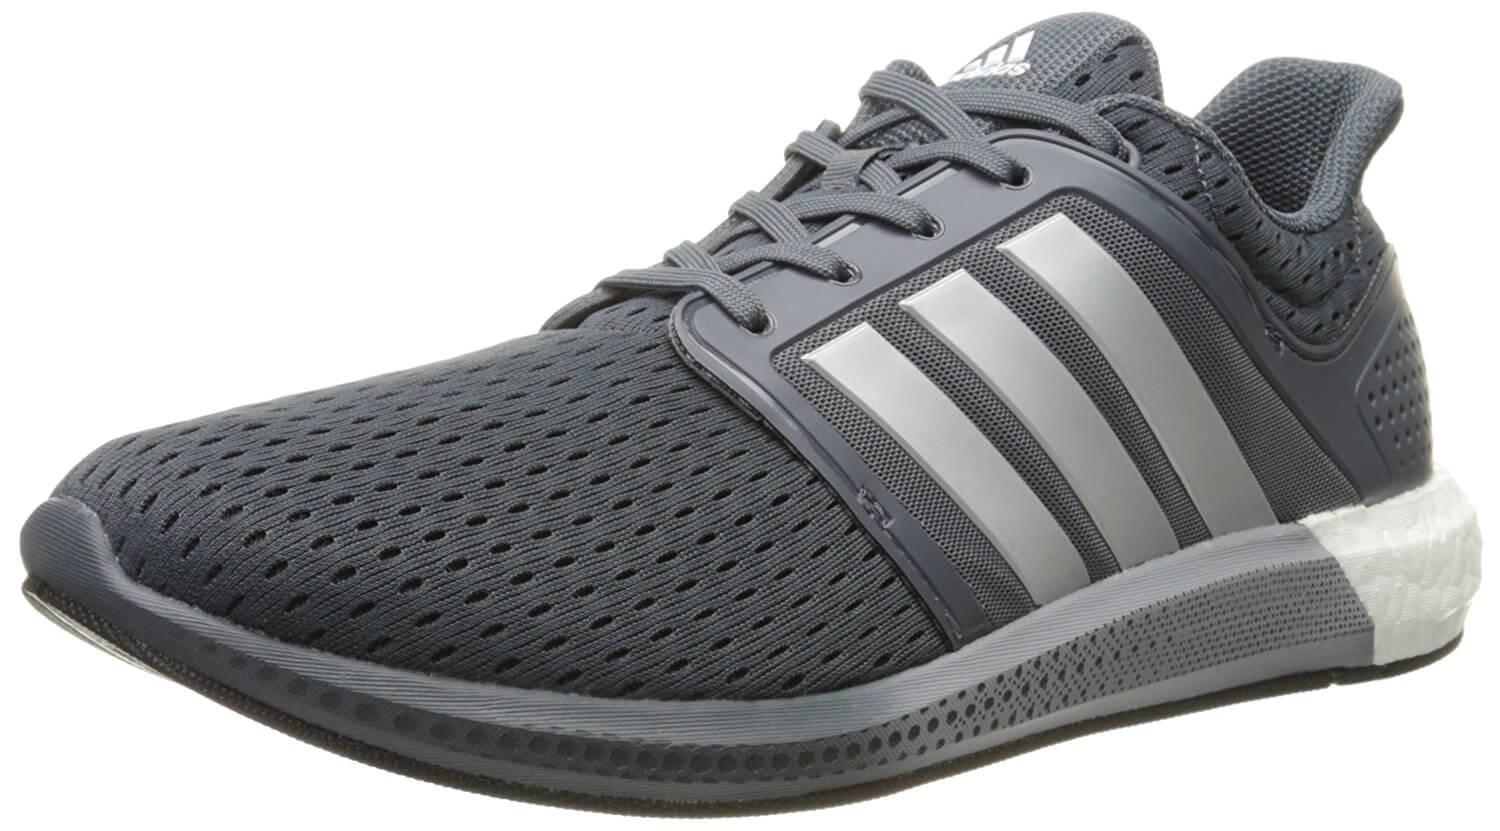 51e03a1bb8aec Adidas Solar Boost Reviewed - To Buy or Not in May 2019